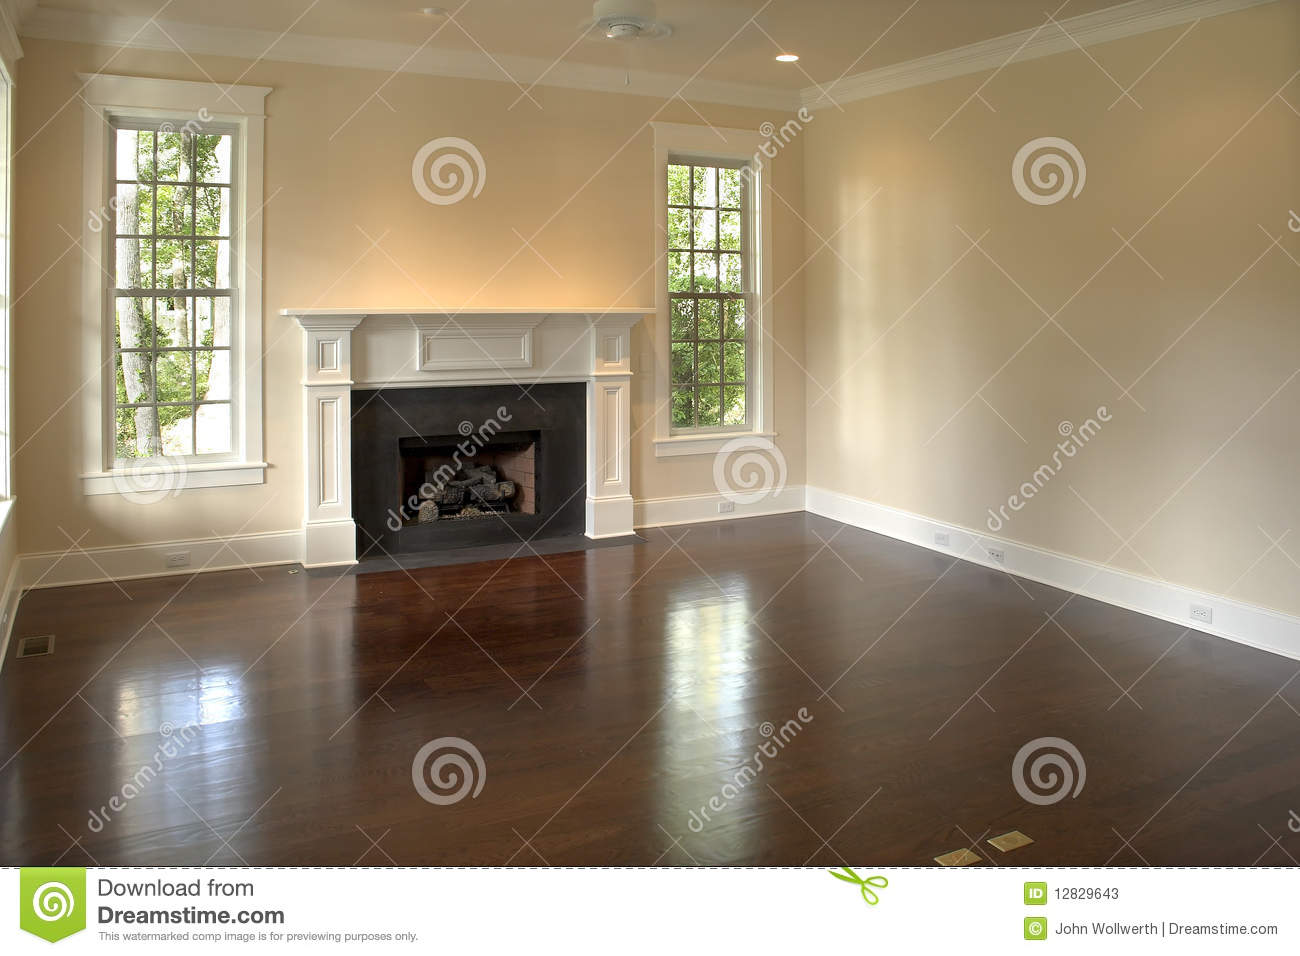 empty bedroom with fireplace stock photos image 12829643 empty bedroom with fireplace stock photos